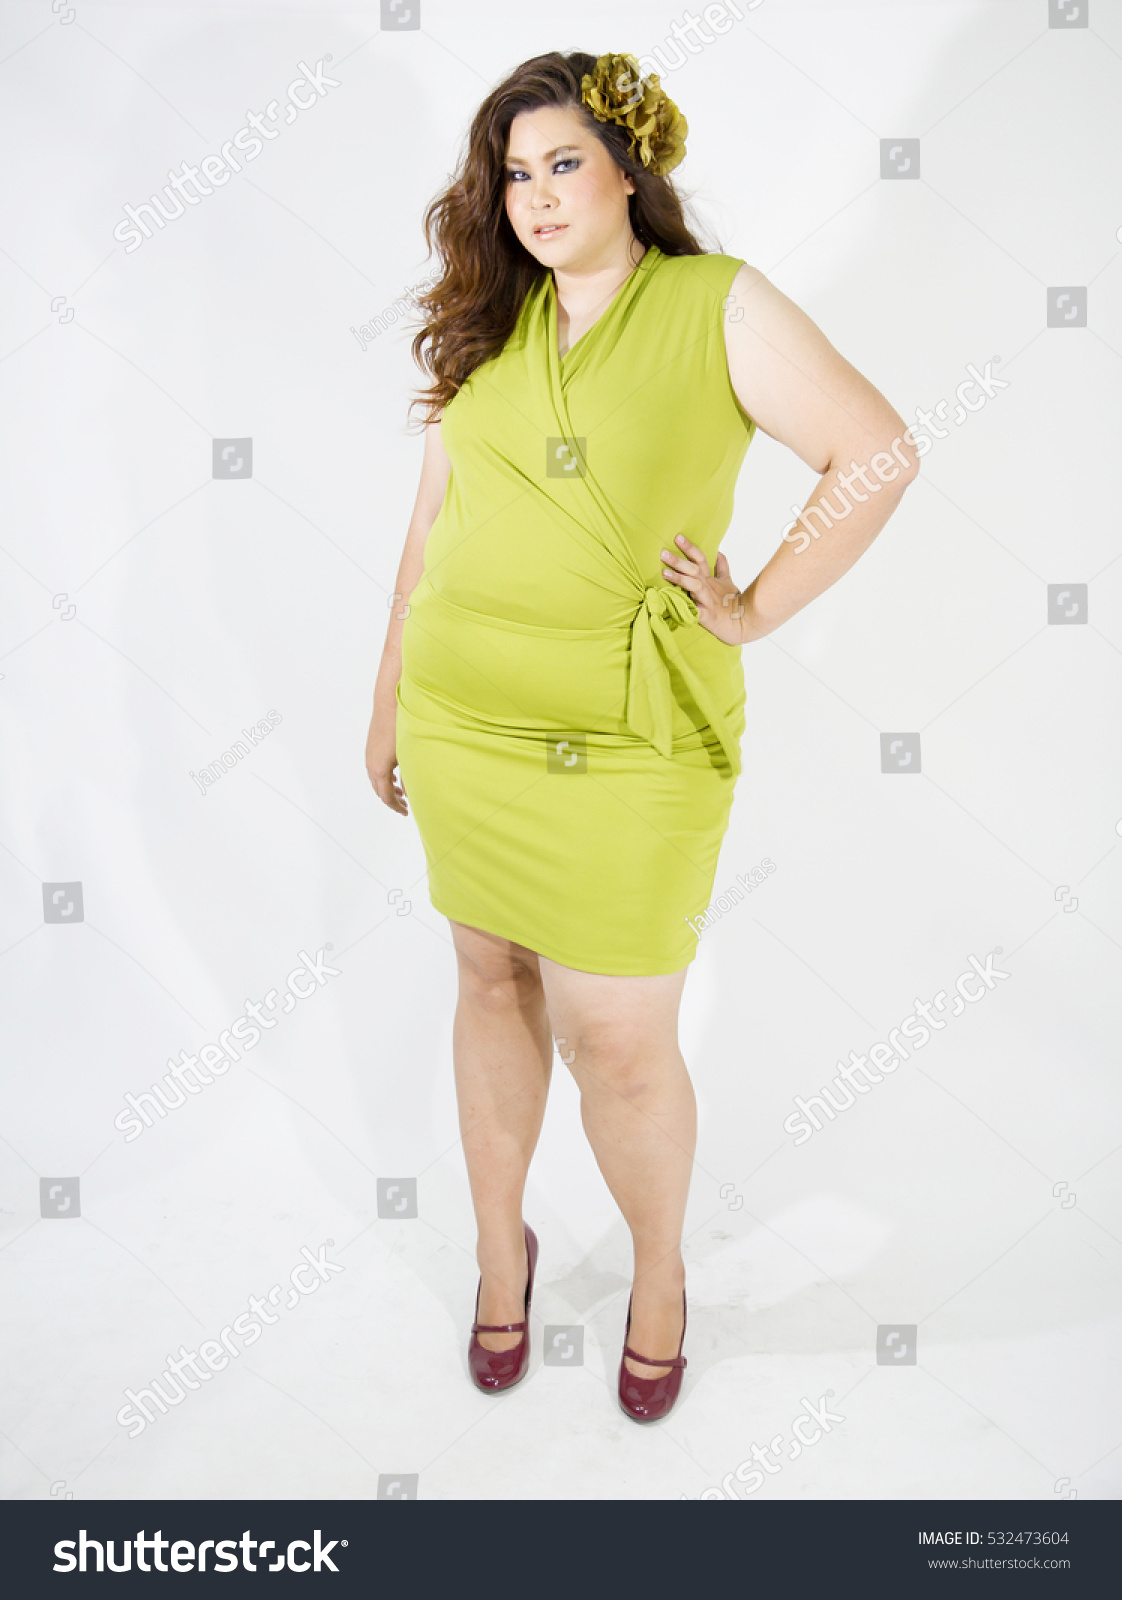 Poses for plus size sexy pictures opinion